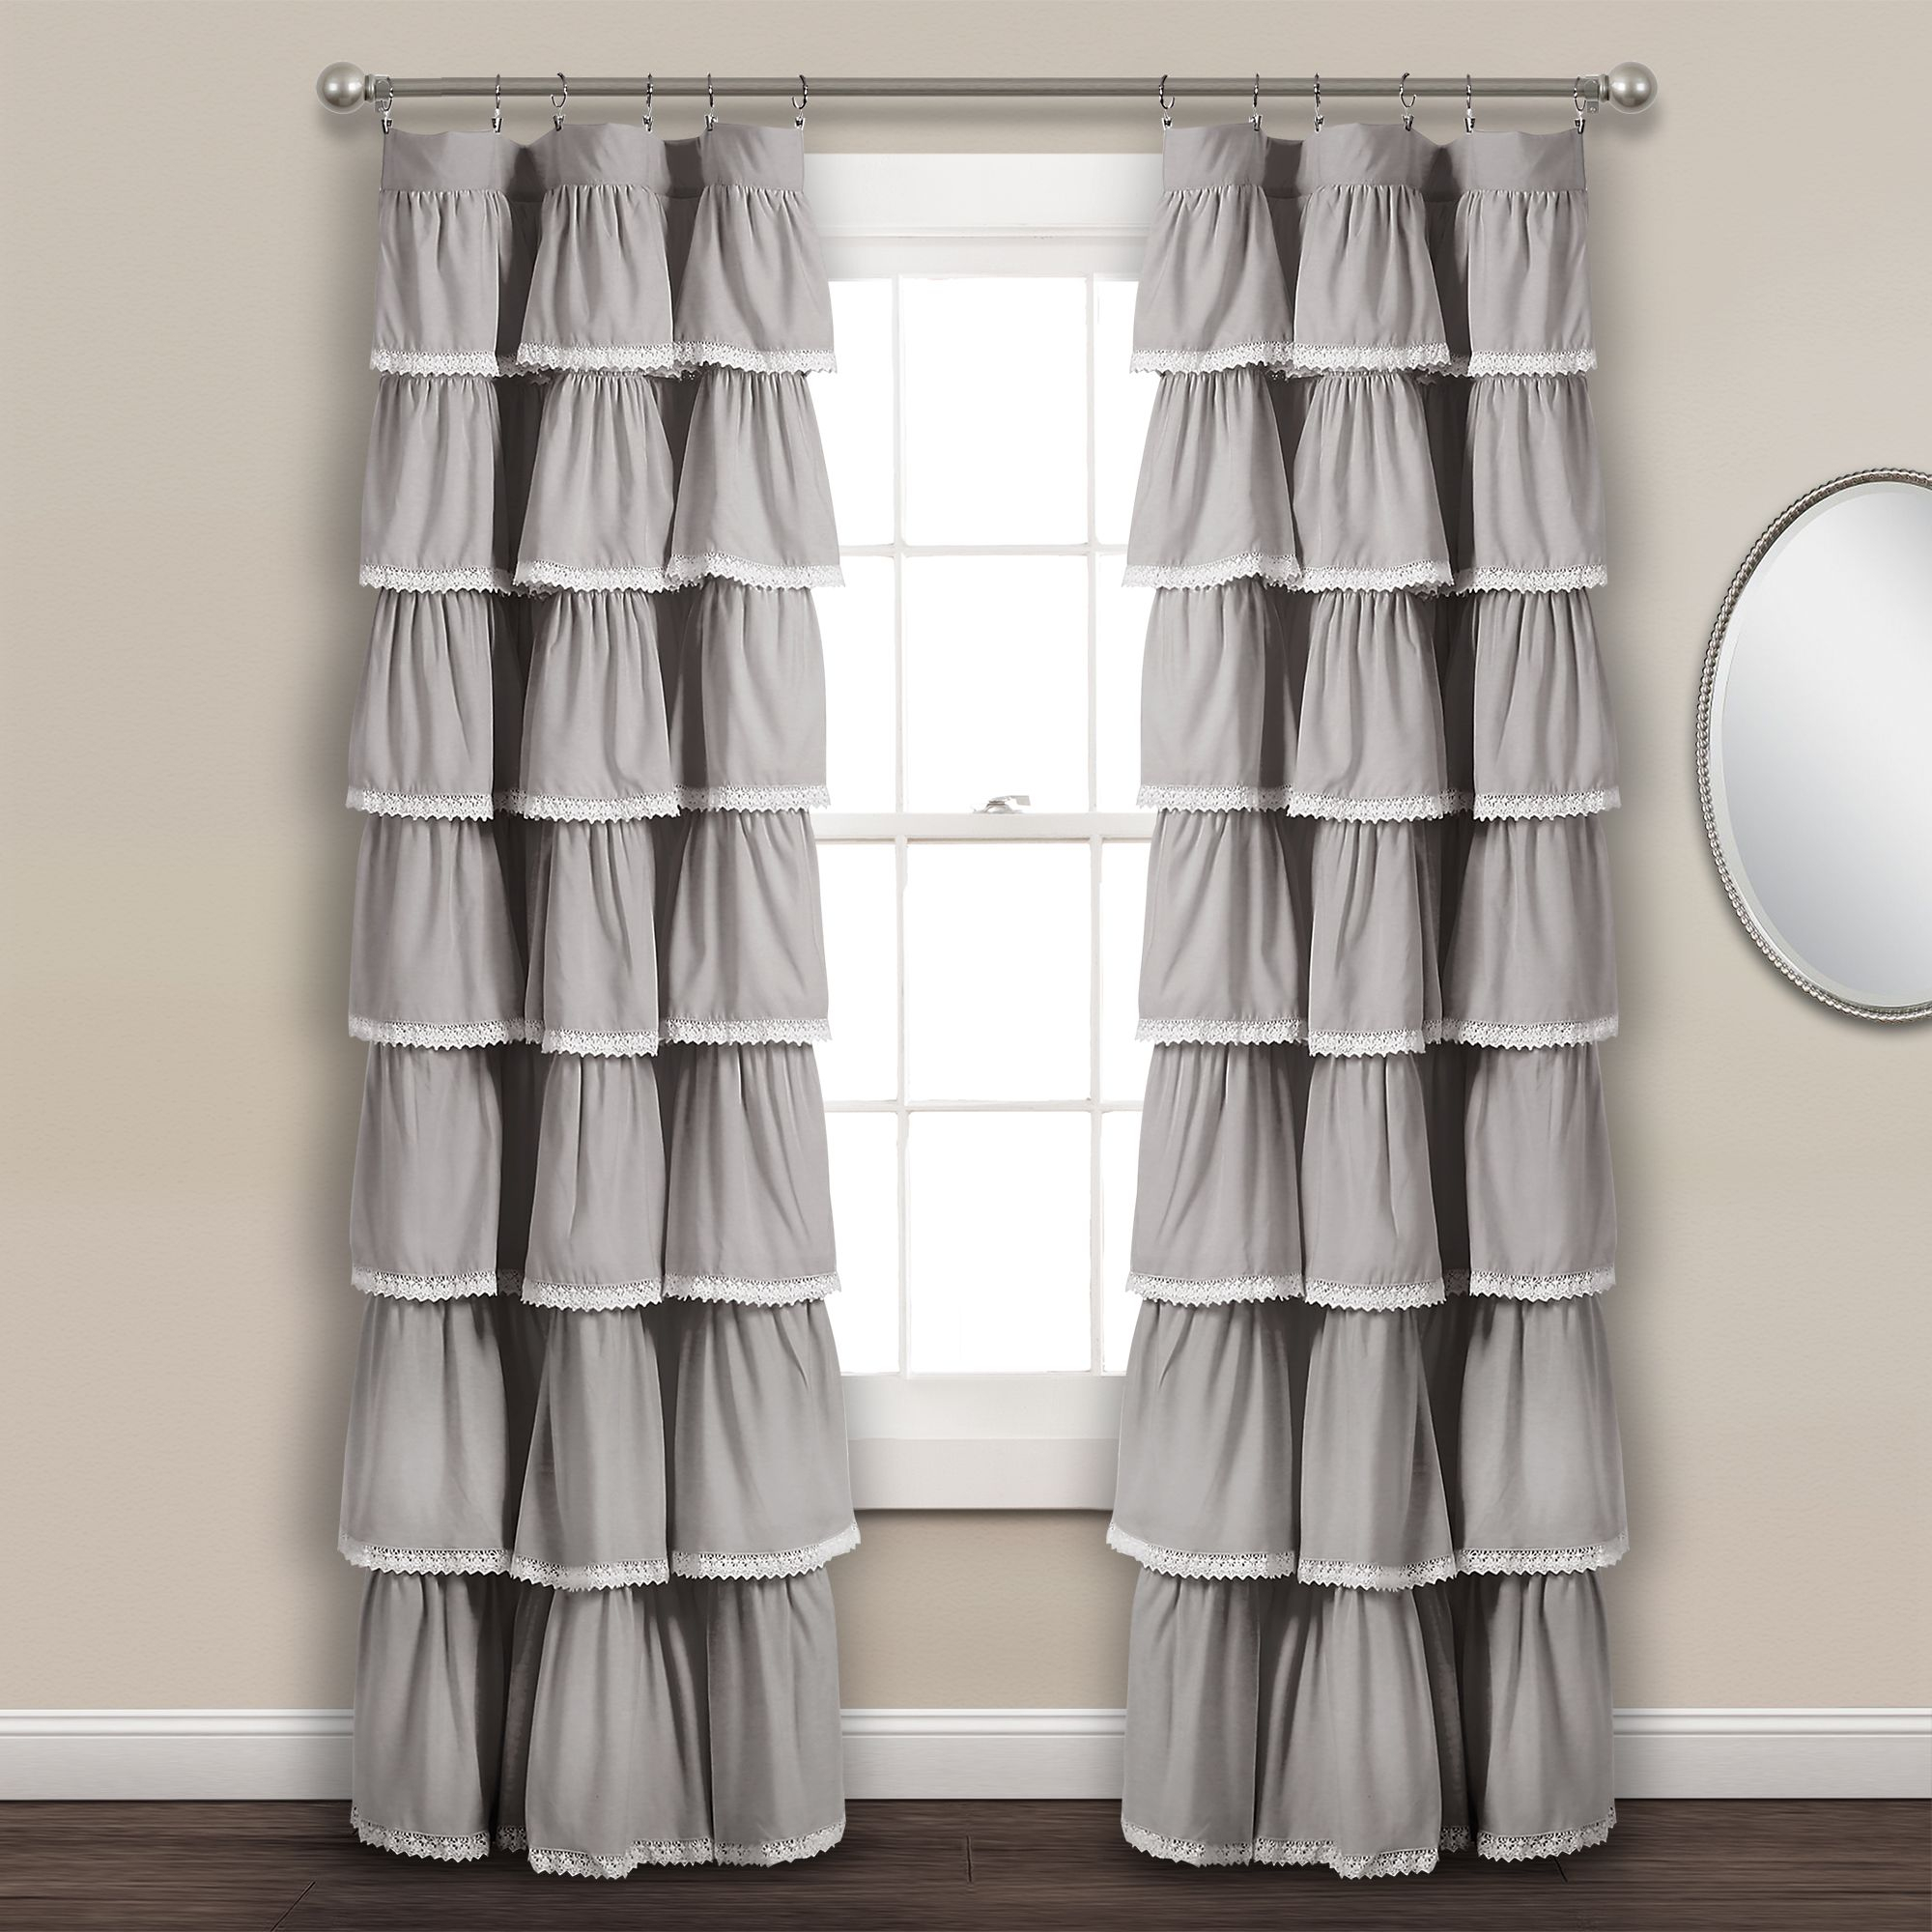 Lace Ruffle Window Curtain Panel | Lush Living Rooms In 2019 Inside Ruffle Diamond Curtain Panel Pairs (View 17 of 20)